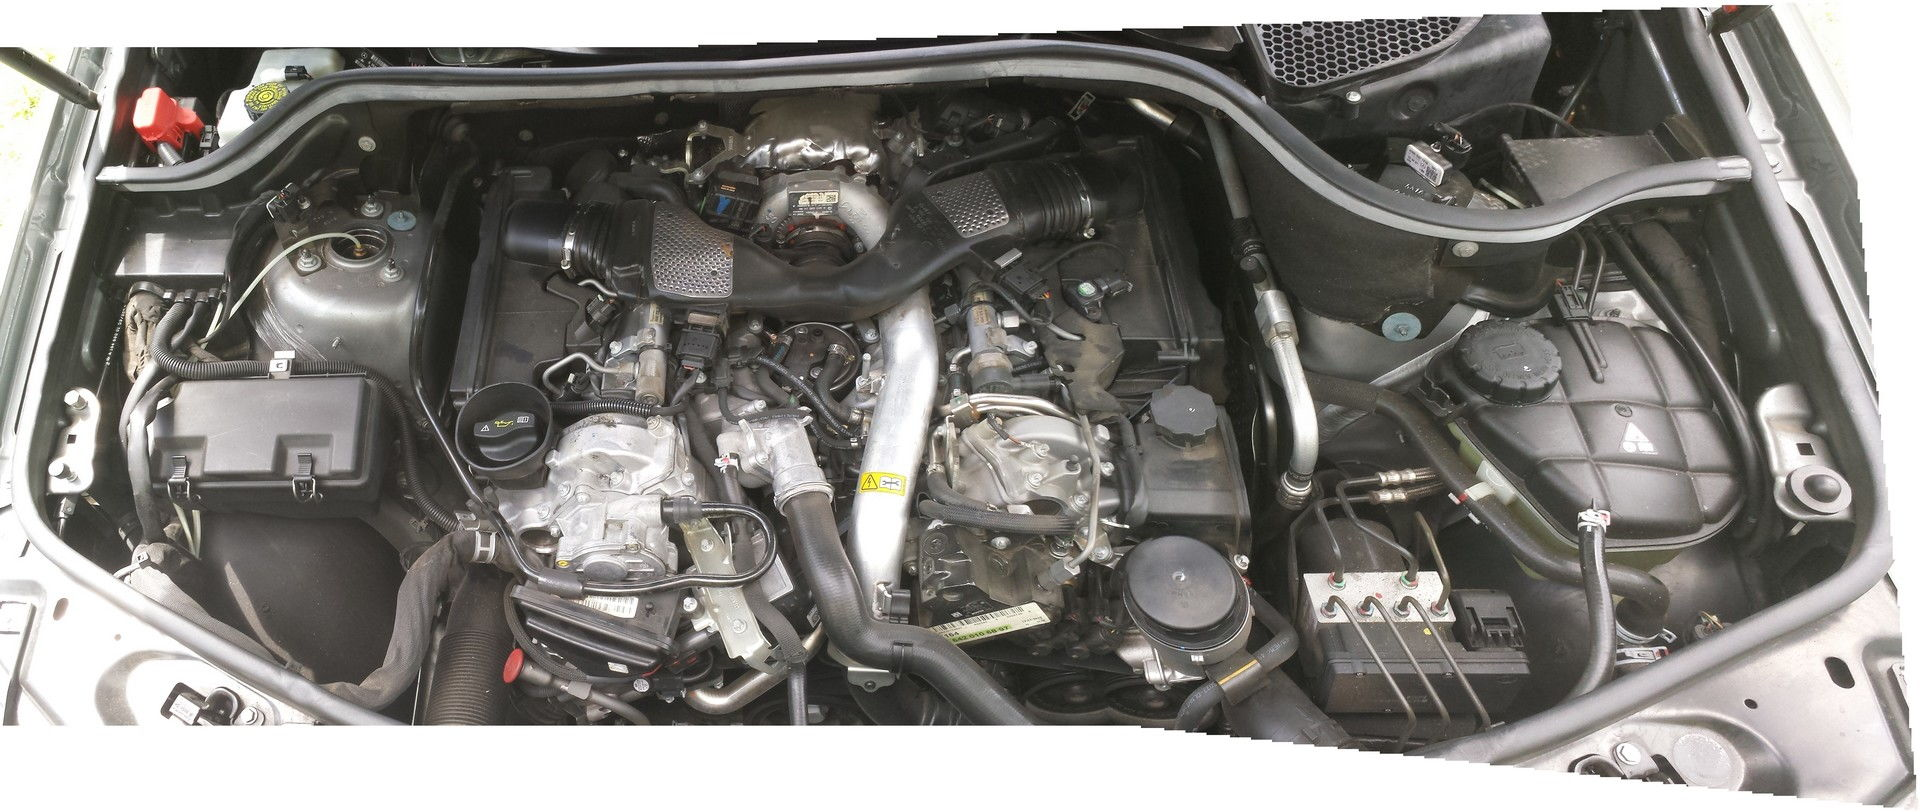 ecu wiring diagram mercedes 2003 ford f150 power mirror w164 - where are glow plugs in photo mbworld.org forums